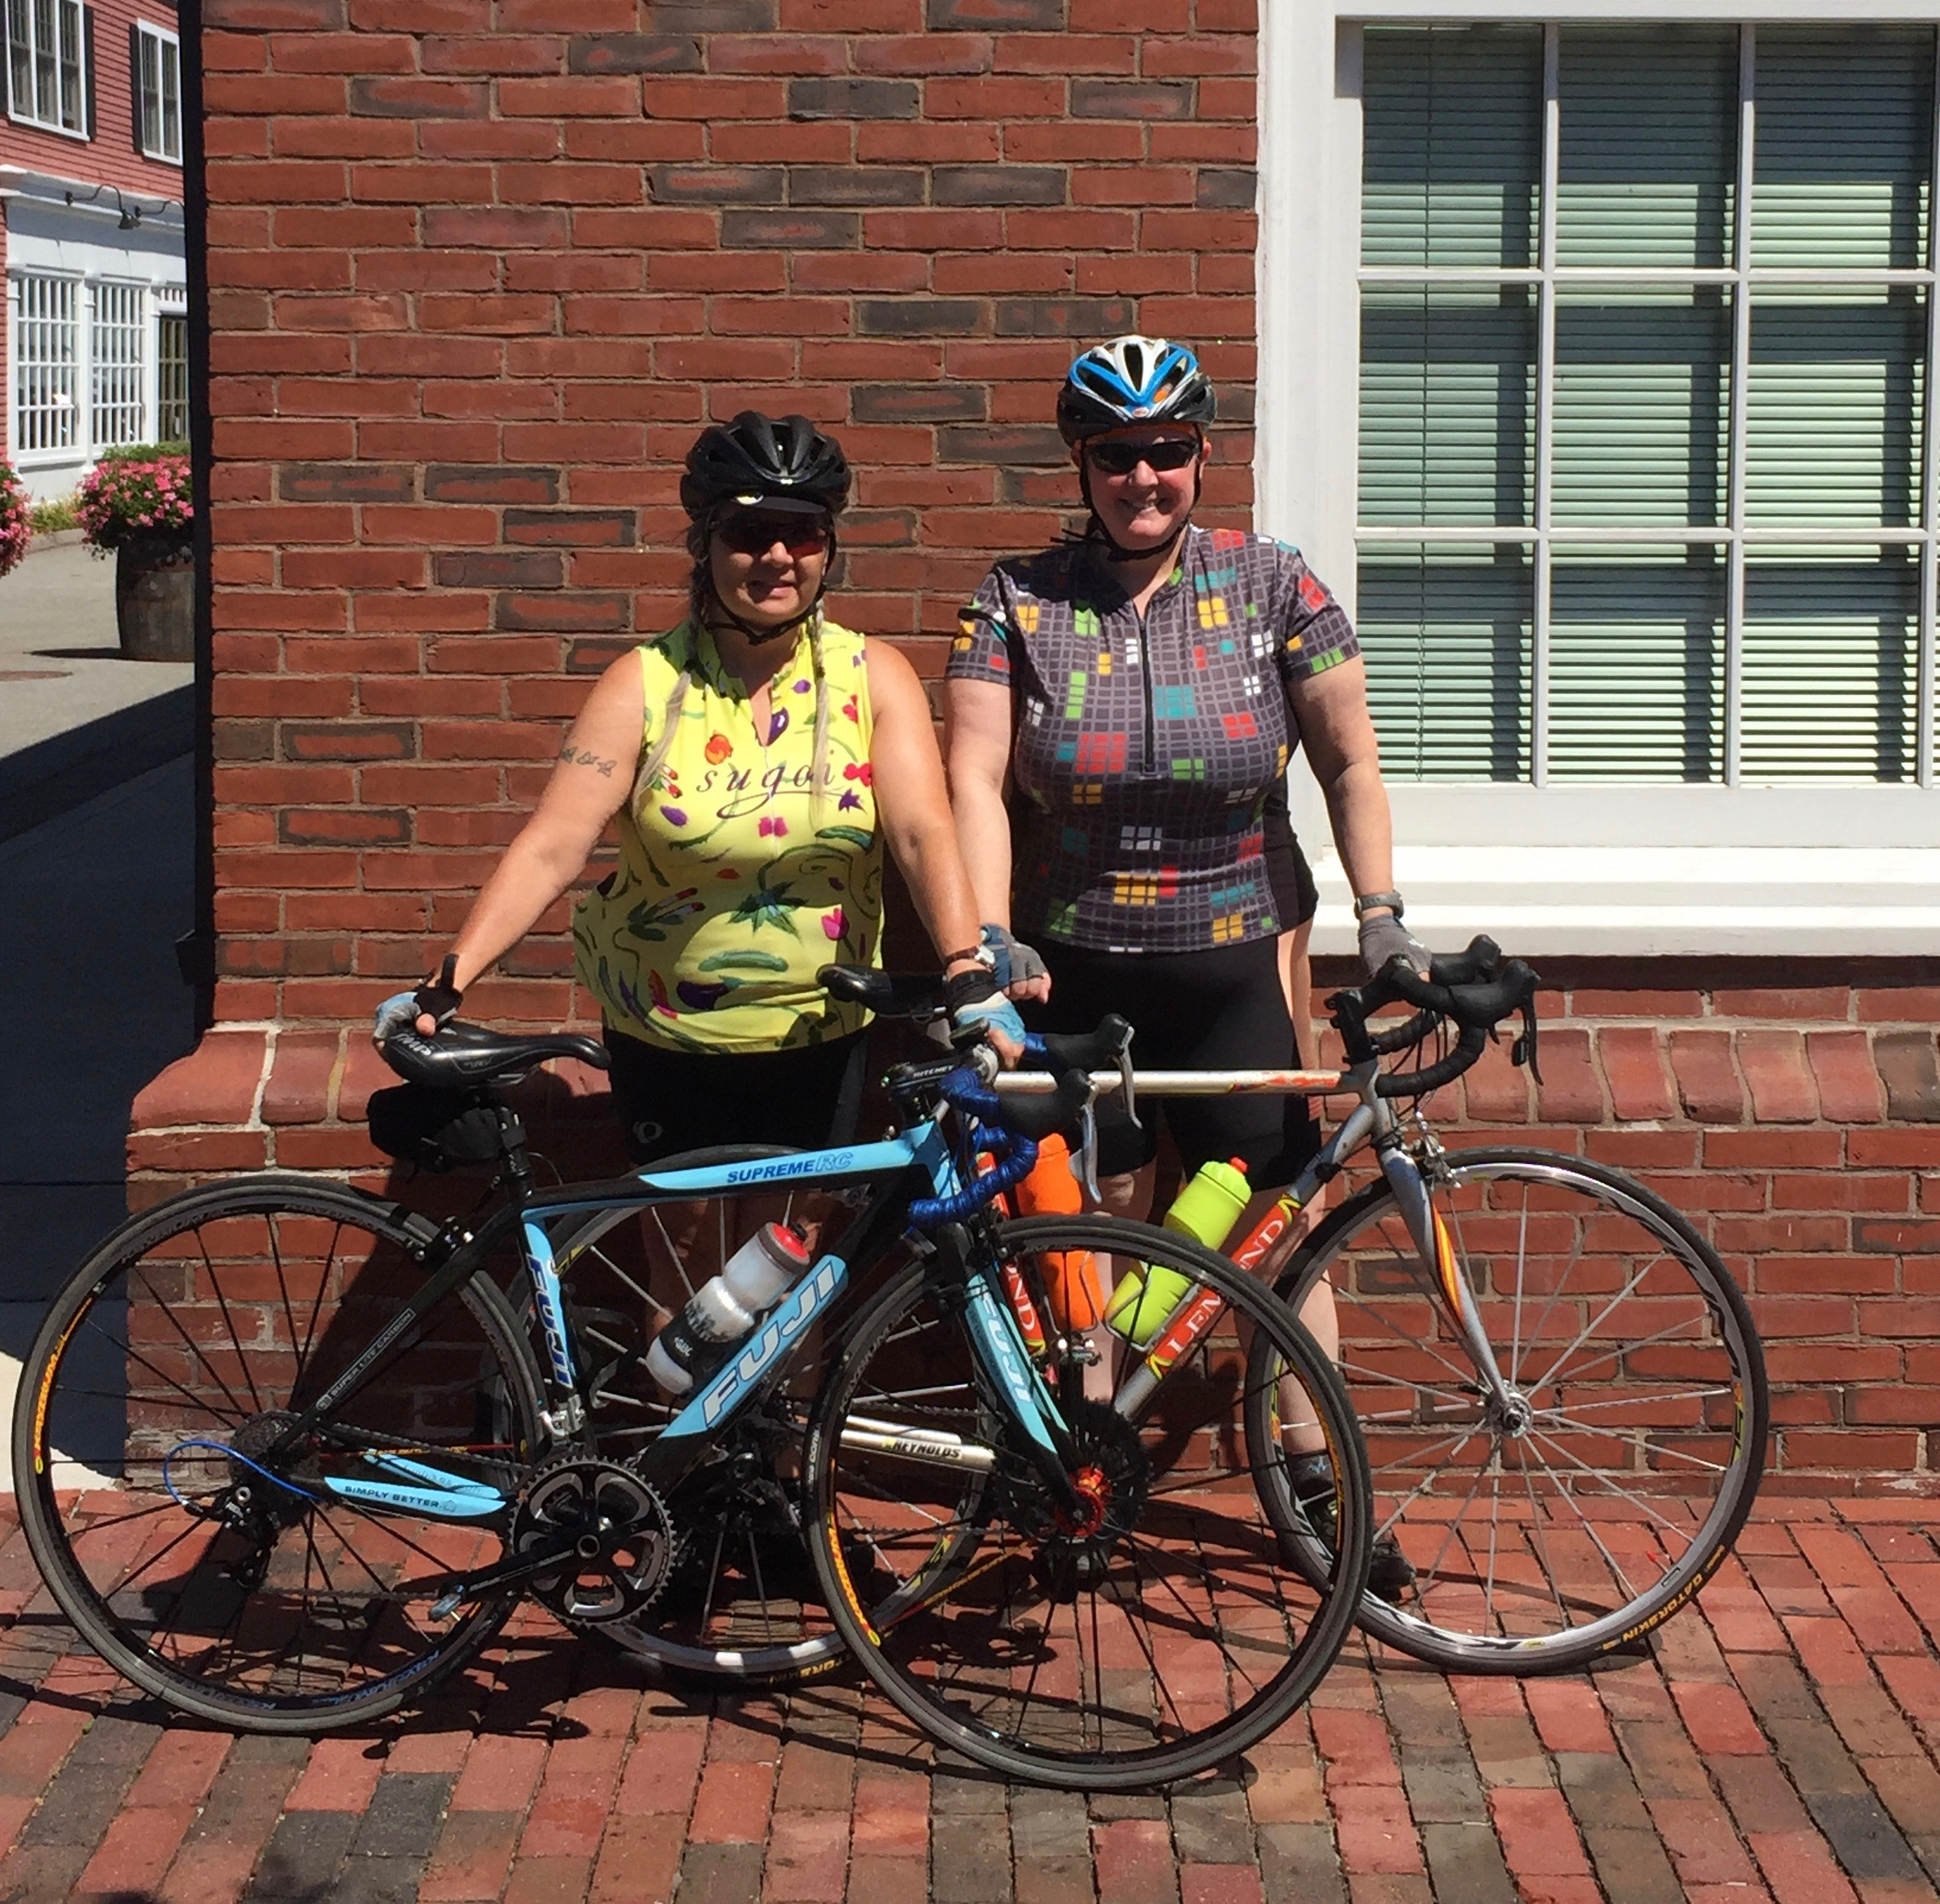 Pata and me this summer, caffeinated and ready to resume our Friday coffee ride.